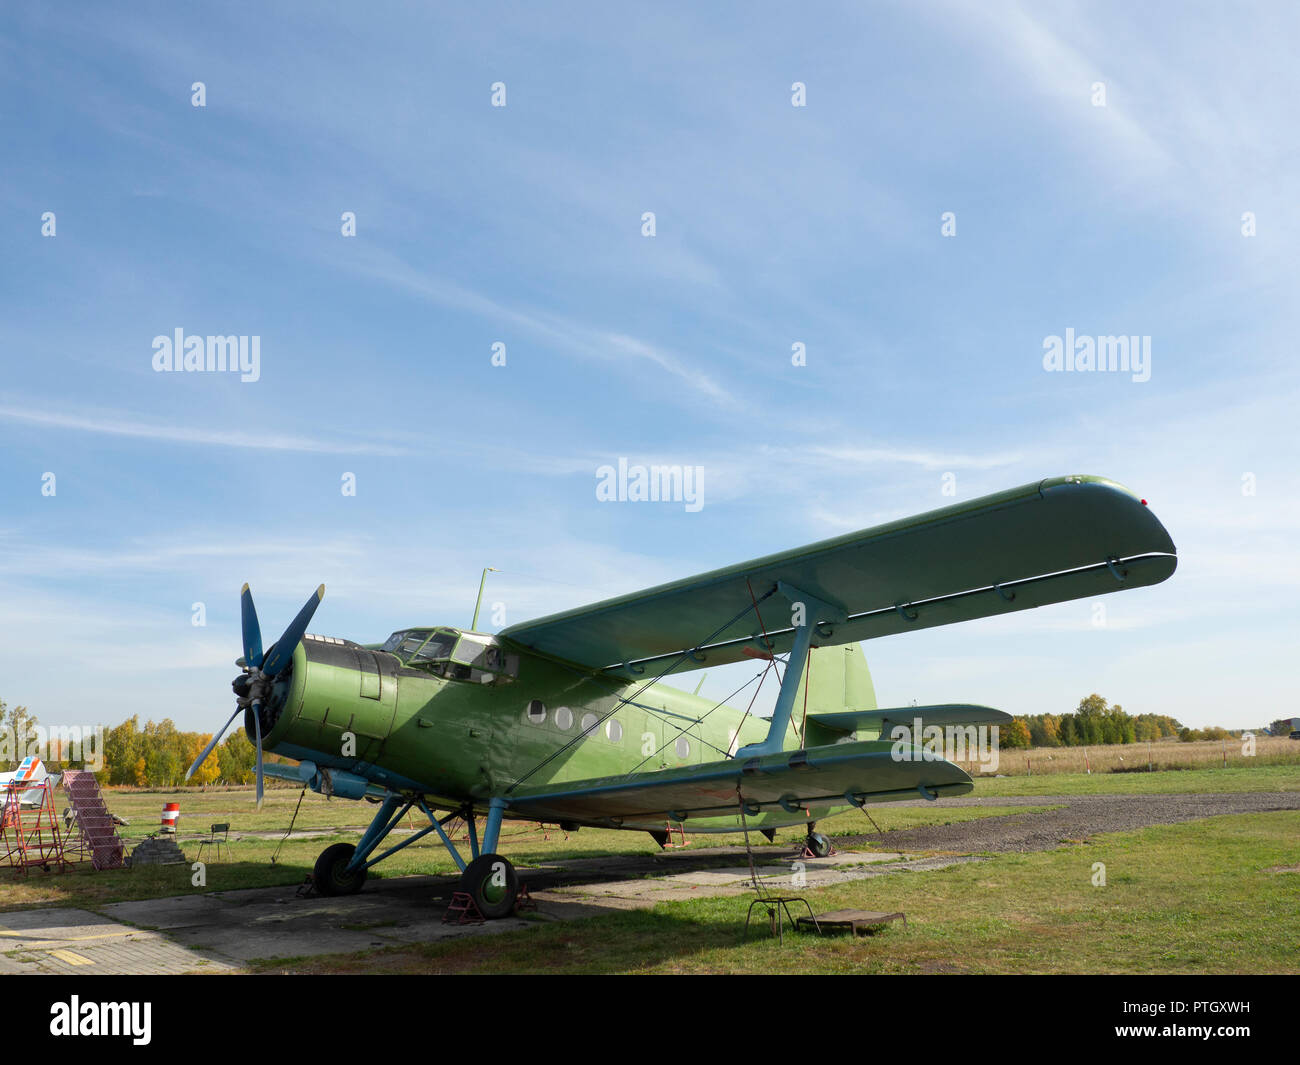 View of classic airplane on the grassy airfield; aircraft after the flight with cases on propellers and other elements; green military aircraft on the - Stock Image